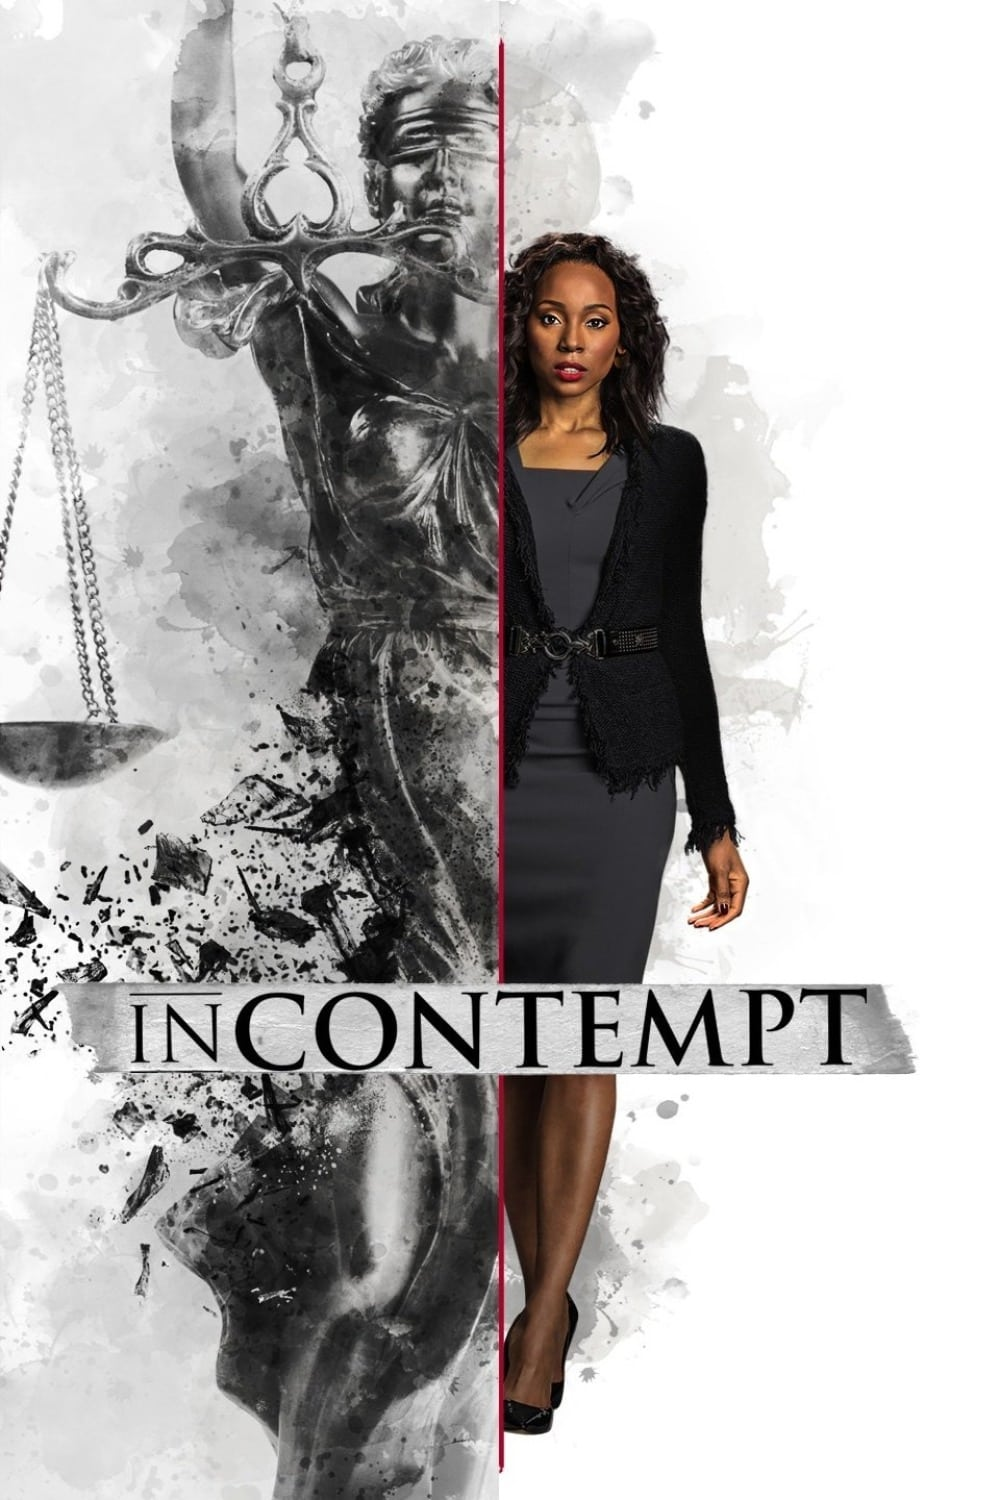 image for In Contempt